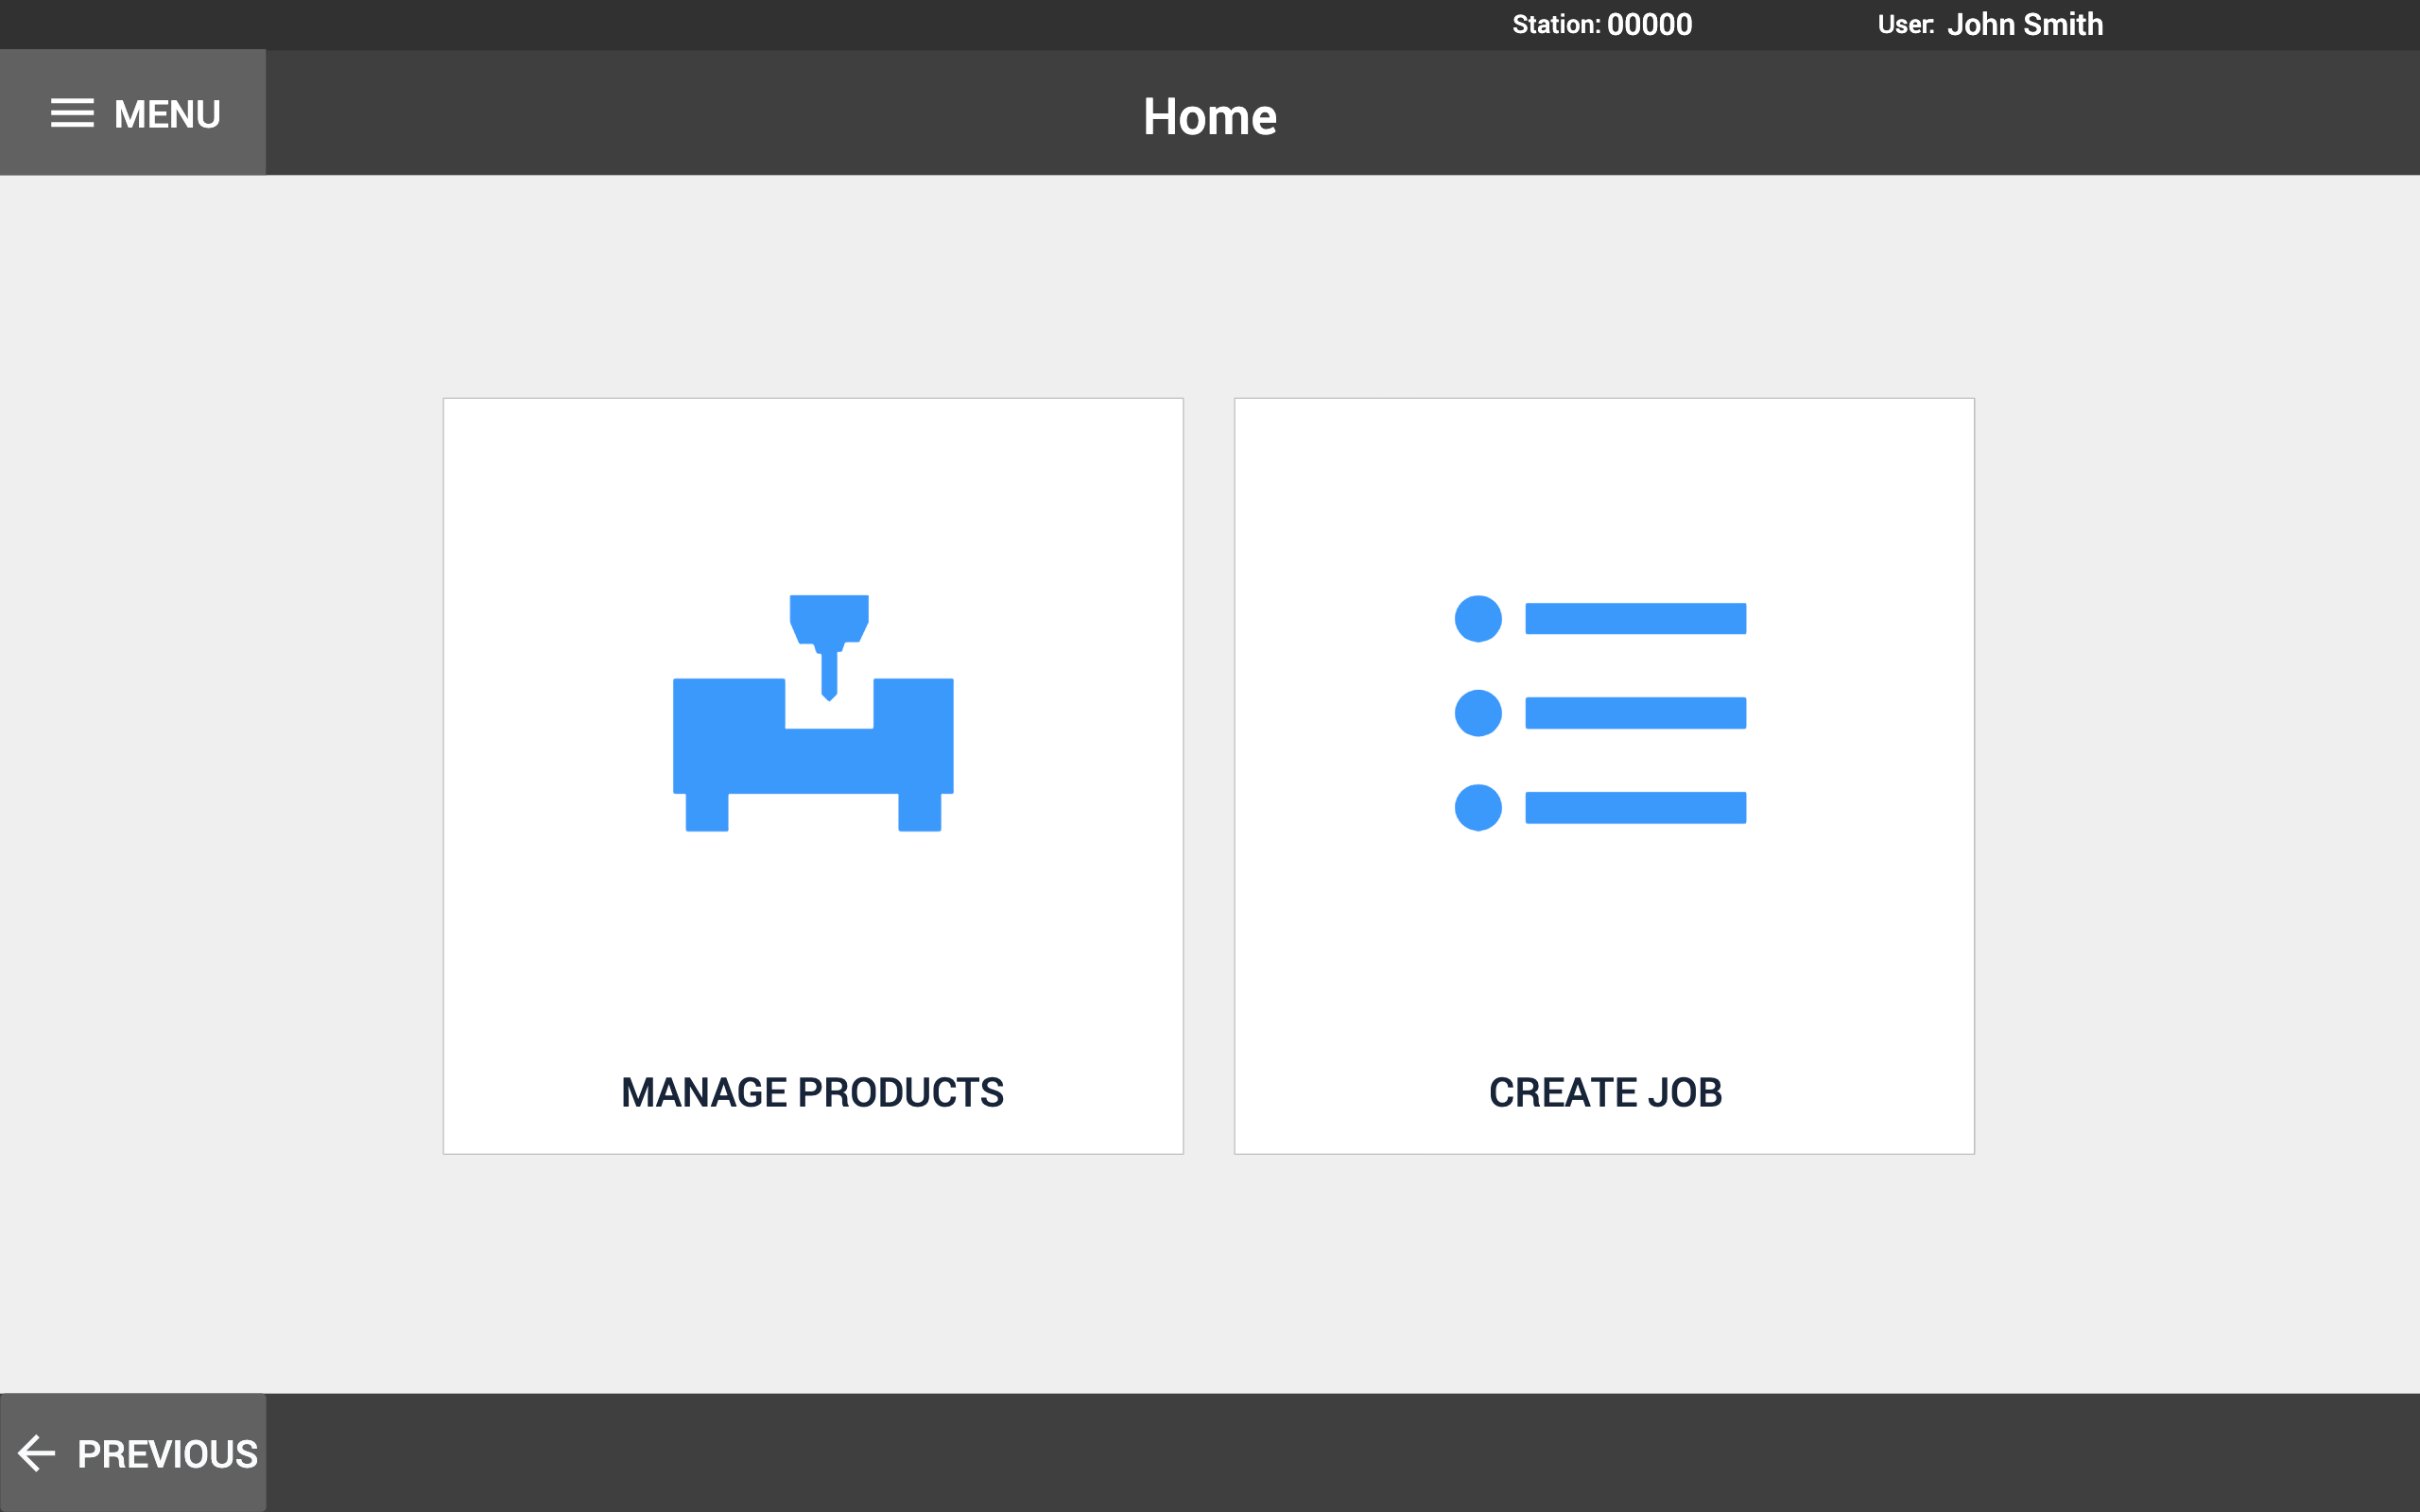 Image of Job and Product Manager app